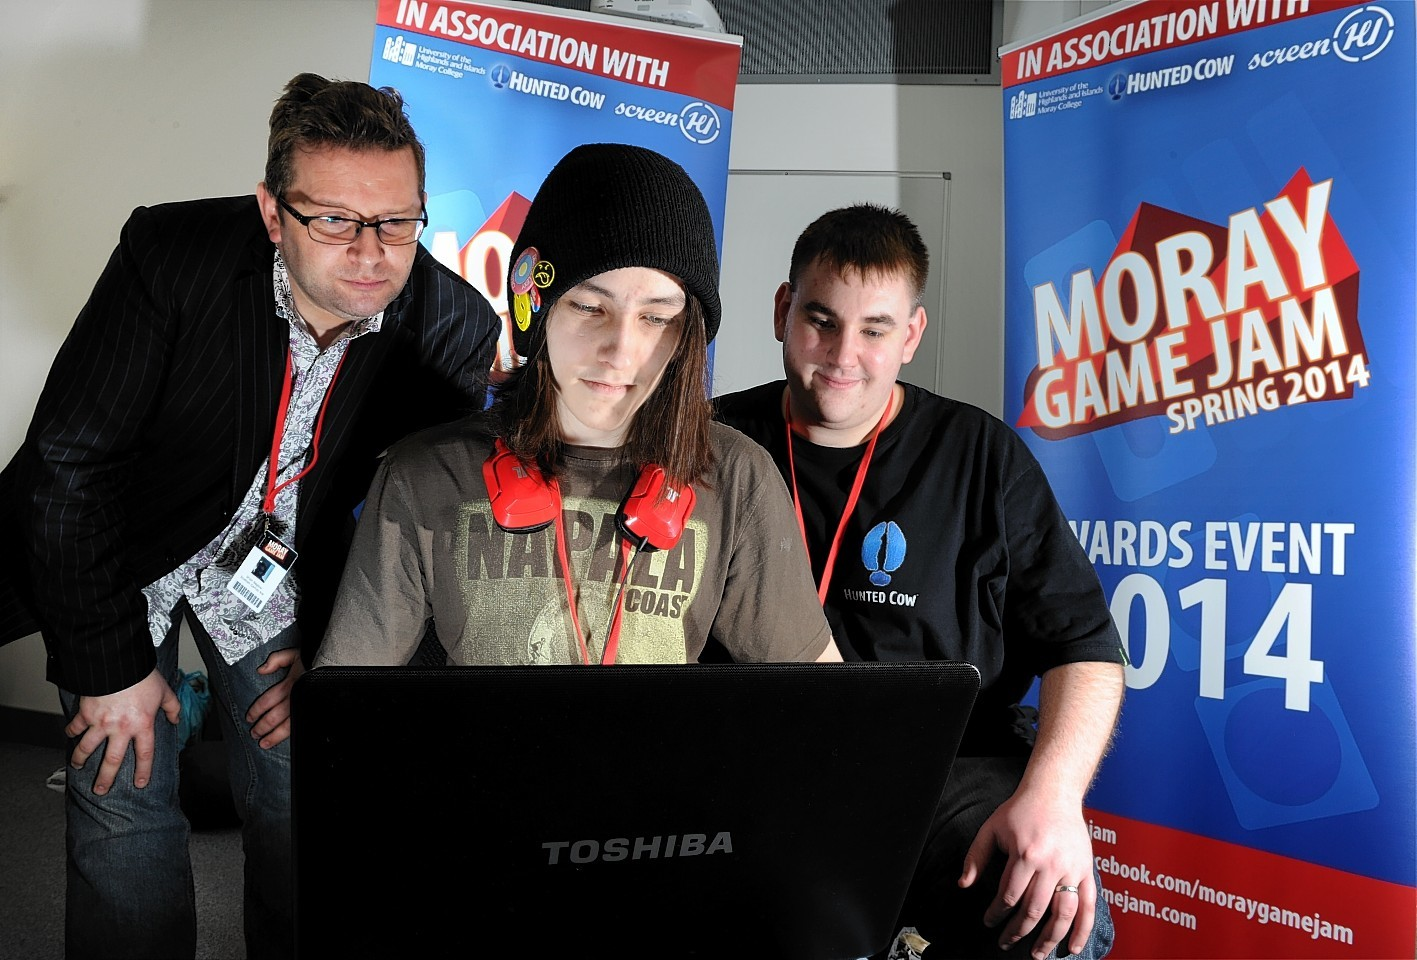 Chris Day, HND Interactive Media student, with judges (left) Brian Baglow, Director of Scottish Games Network and Andrew Mulholland, Director of Hunted Cow Studios, at Moray Game Jam 2014